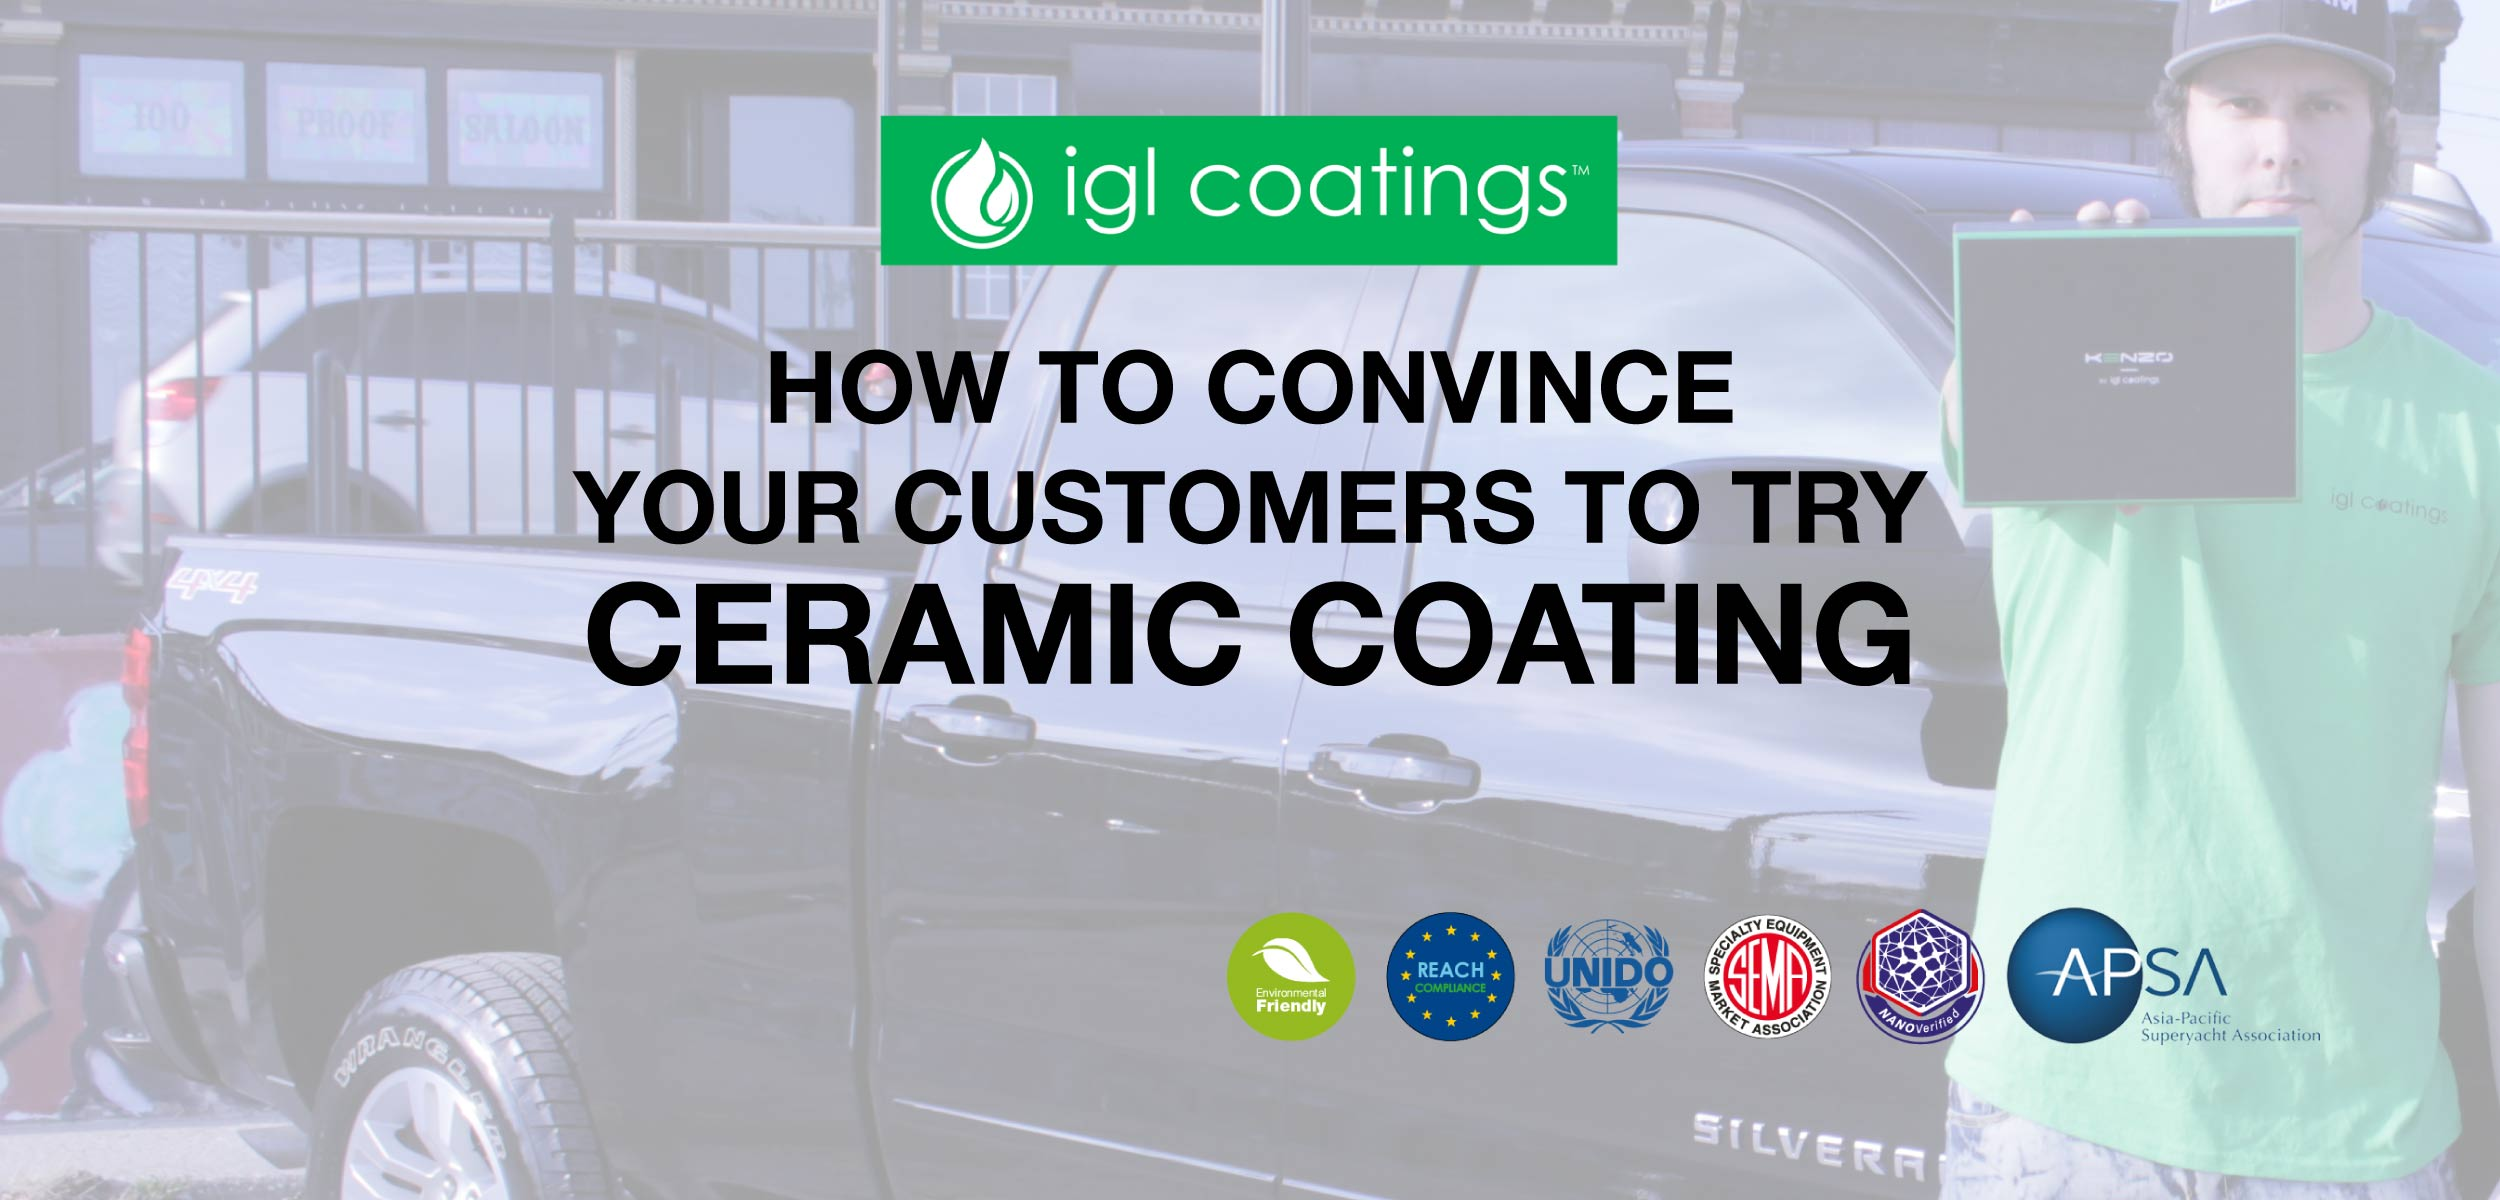 HOW-TO-CONVINCE-YOUR-CUSTOMERS-TO-TRY-CERAMIC-COATING-BENEFITS-OF-CERAMIC-COATING-IGL-COATINGS